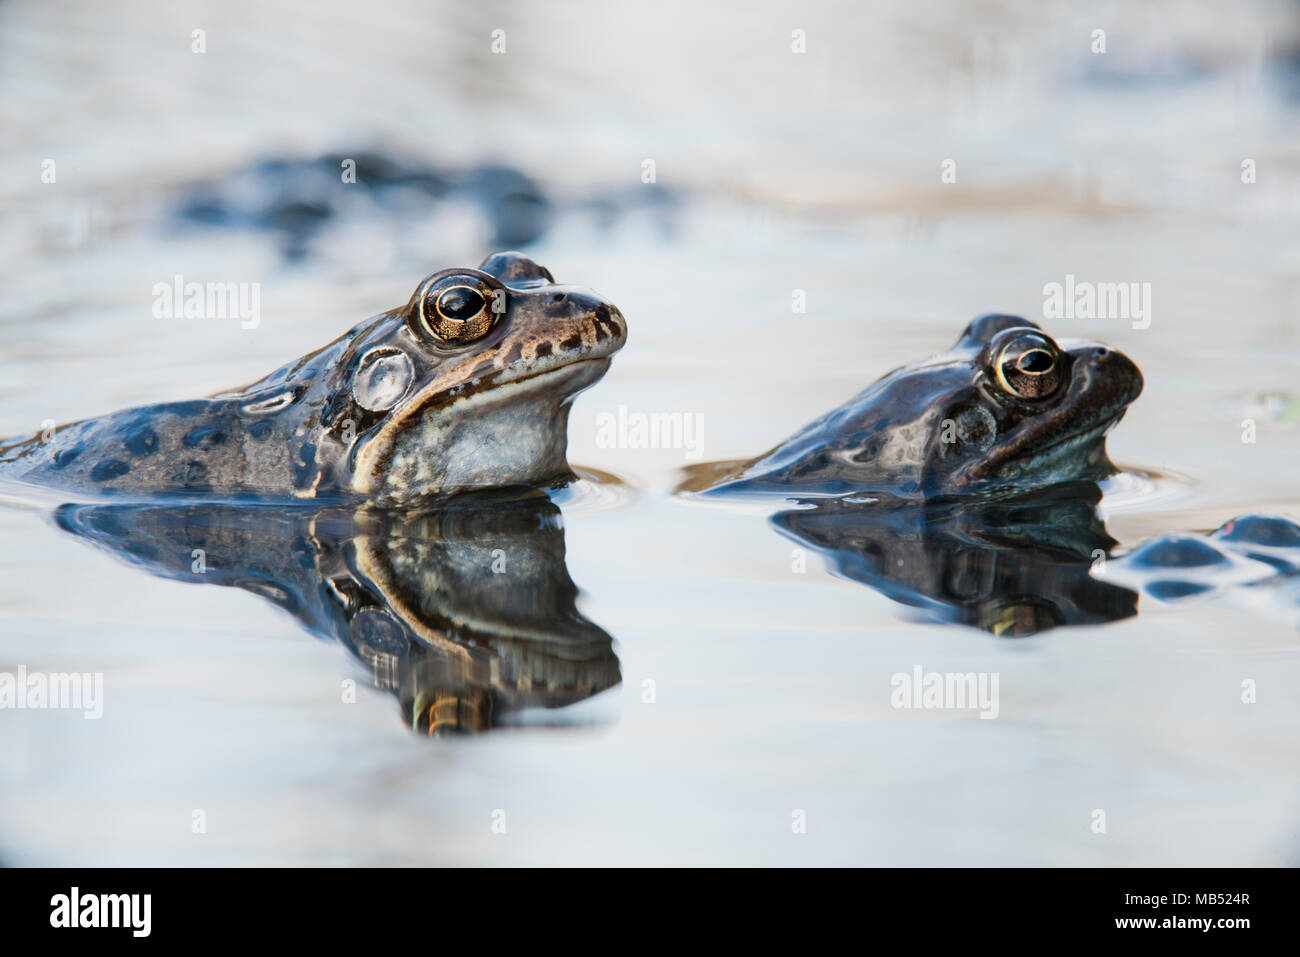 Common frogs (Rana temporaria) spawning, Emsland, Lower Saxony, Germany - Stock Image